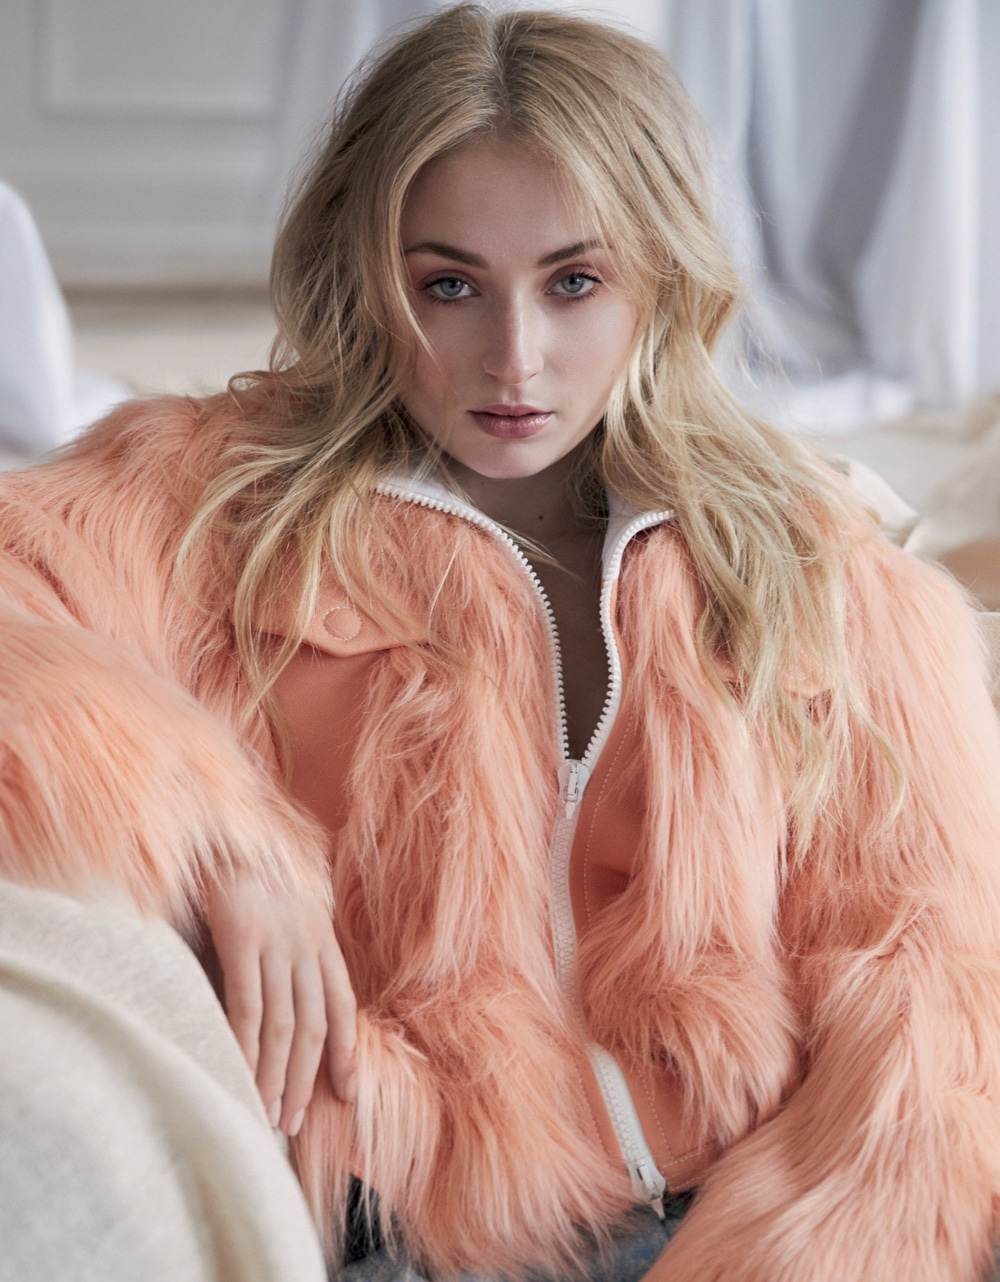 Marie-Claire-UK-August-2017-Sophie-Turner-David-Roemer-1.jpg